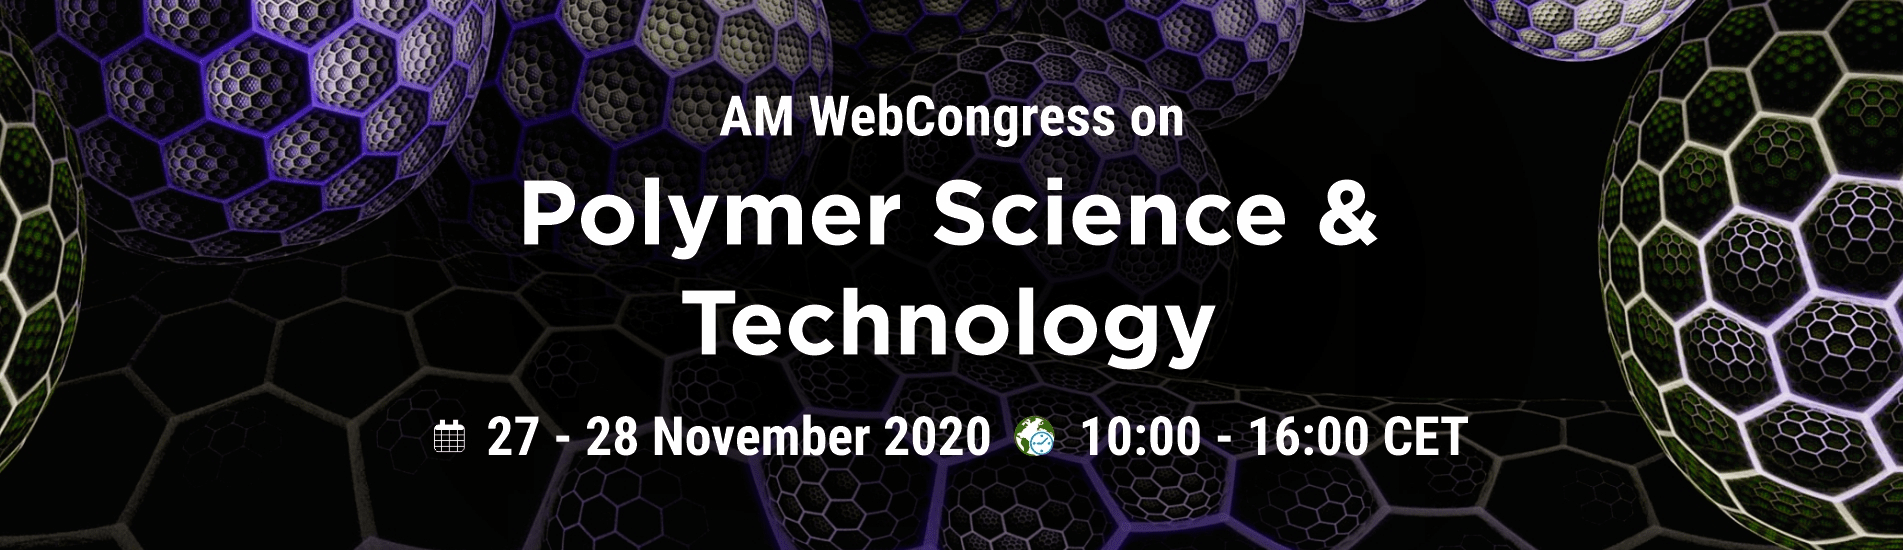 WebCongress on Polymer Science and Technology | AMWeb | IAAM